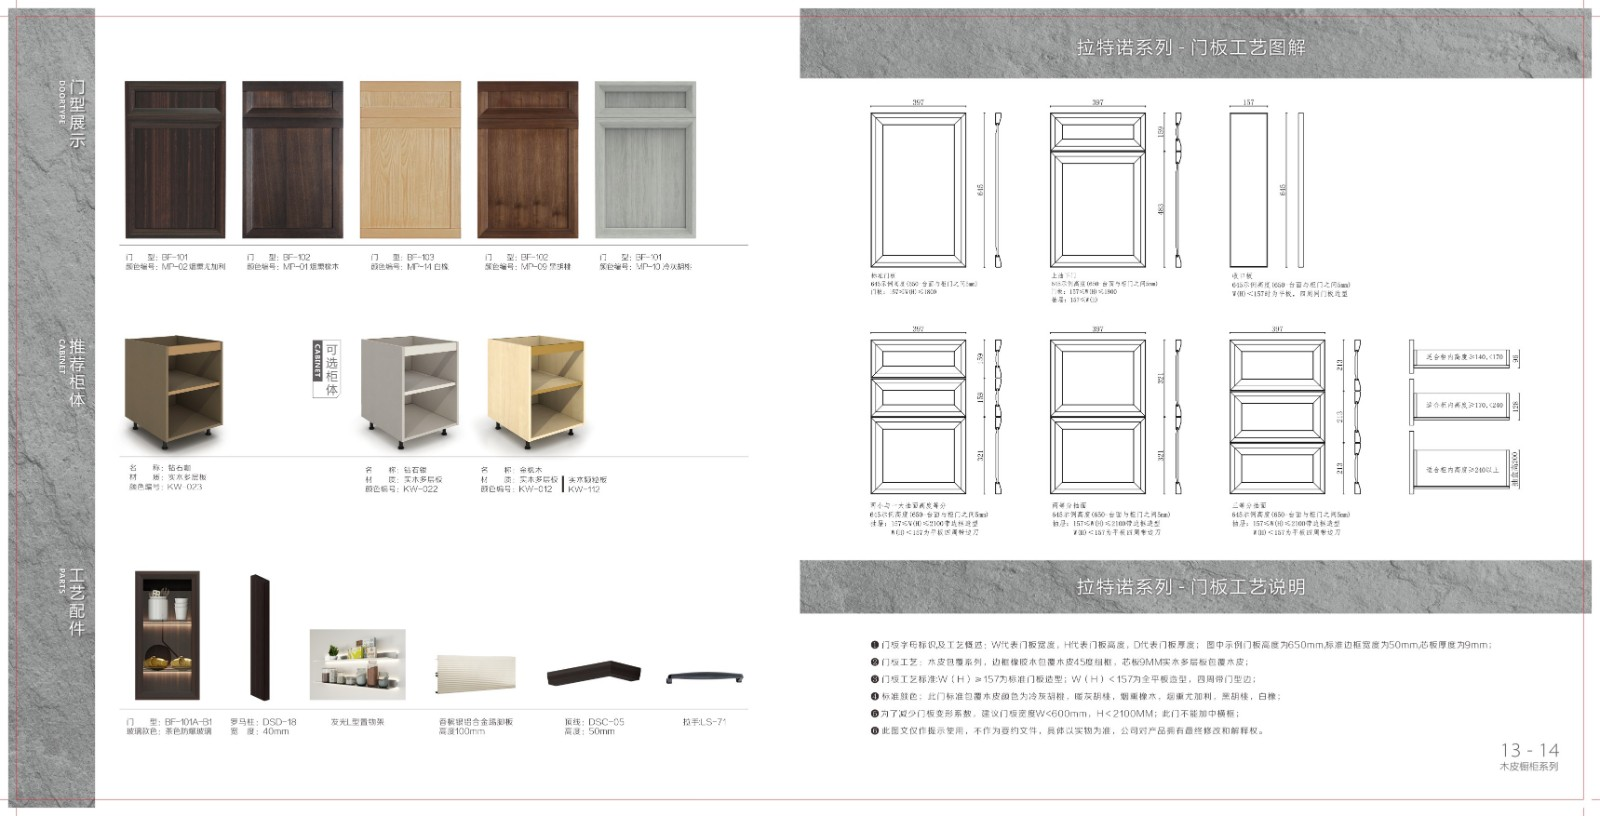 Wholesale bespoke kitchen cabinet sdk05 Supply fivestar hotel-6